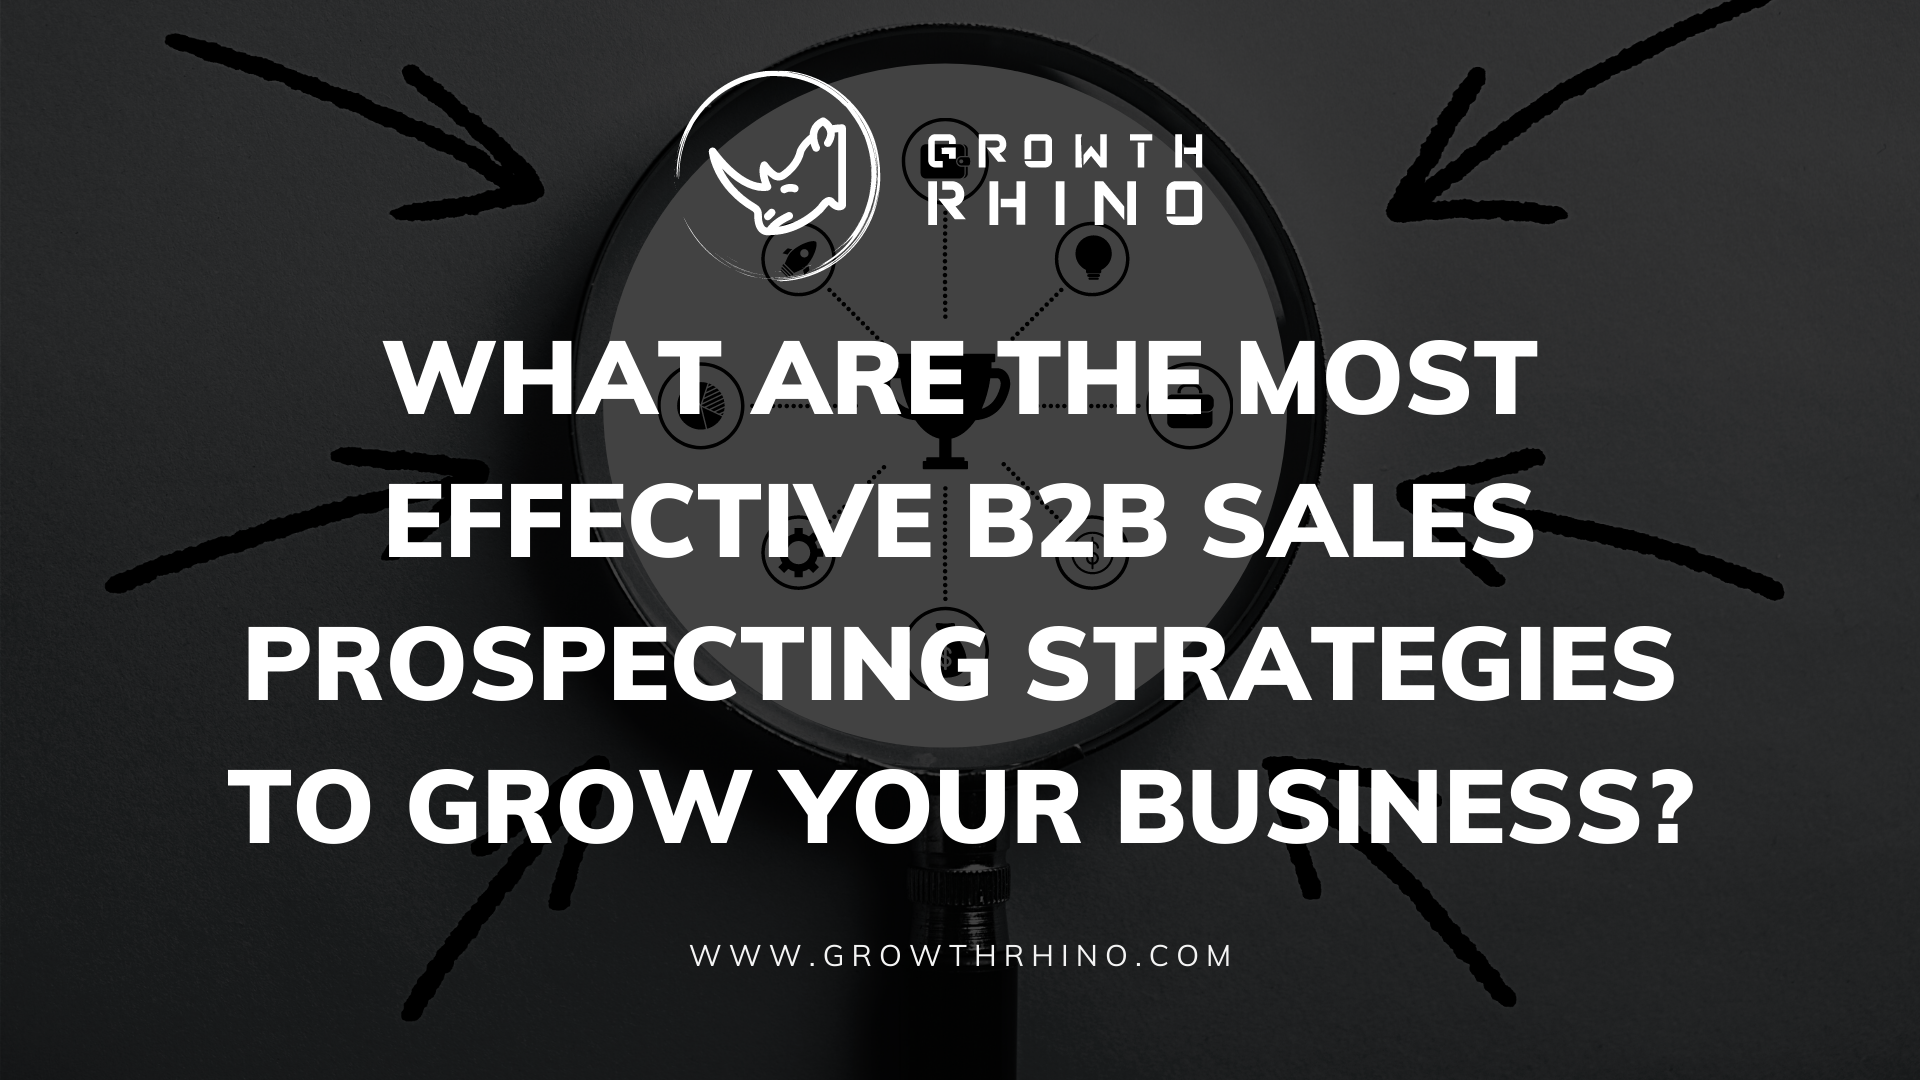 What are the Most Effective B2B Sales Prospecting Strategies?